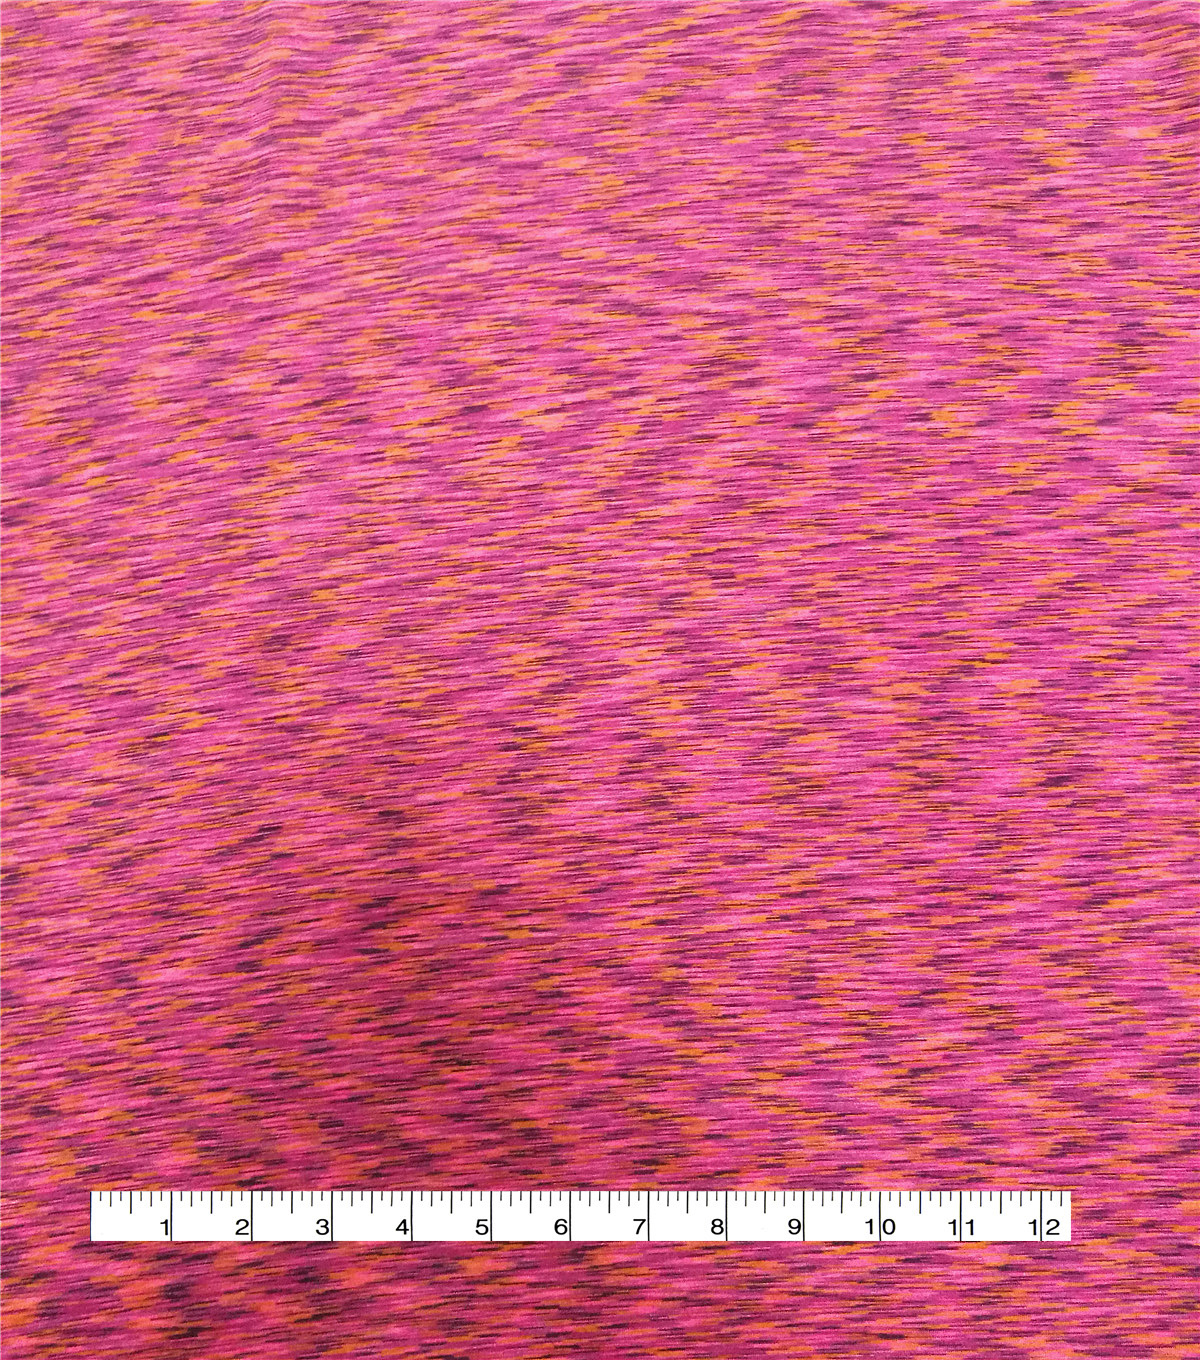 Loungeletics Performance Knit Fabric-Pink Spacedye